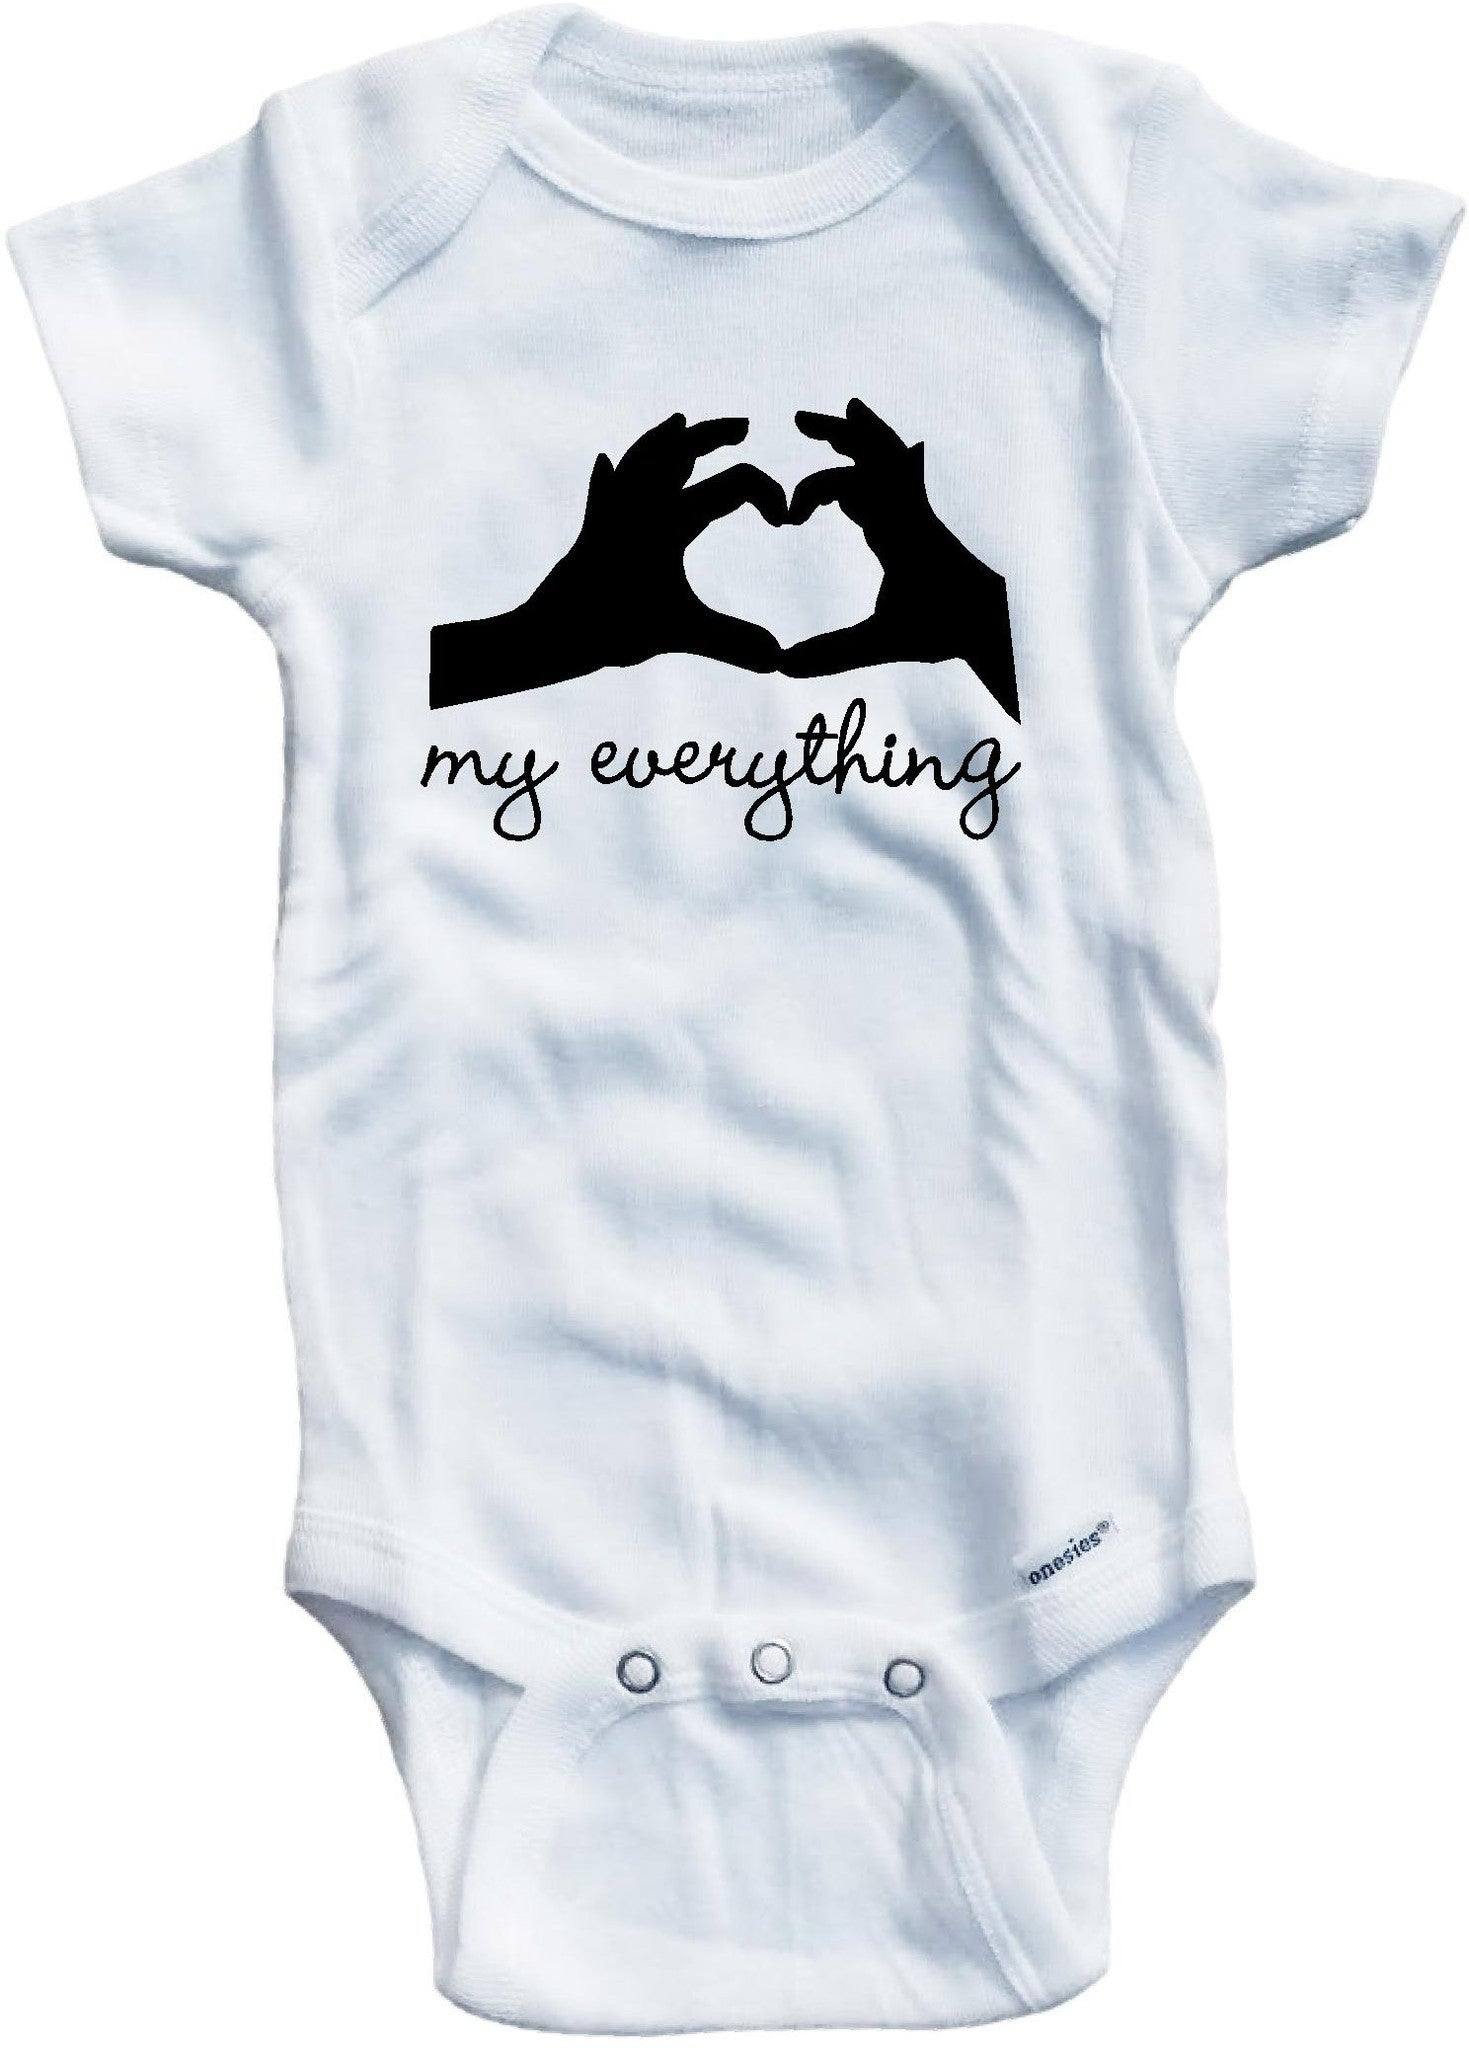 My everything cute infant clothing funny baby clothes